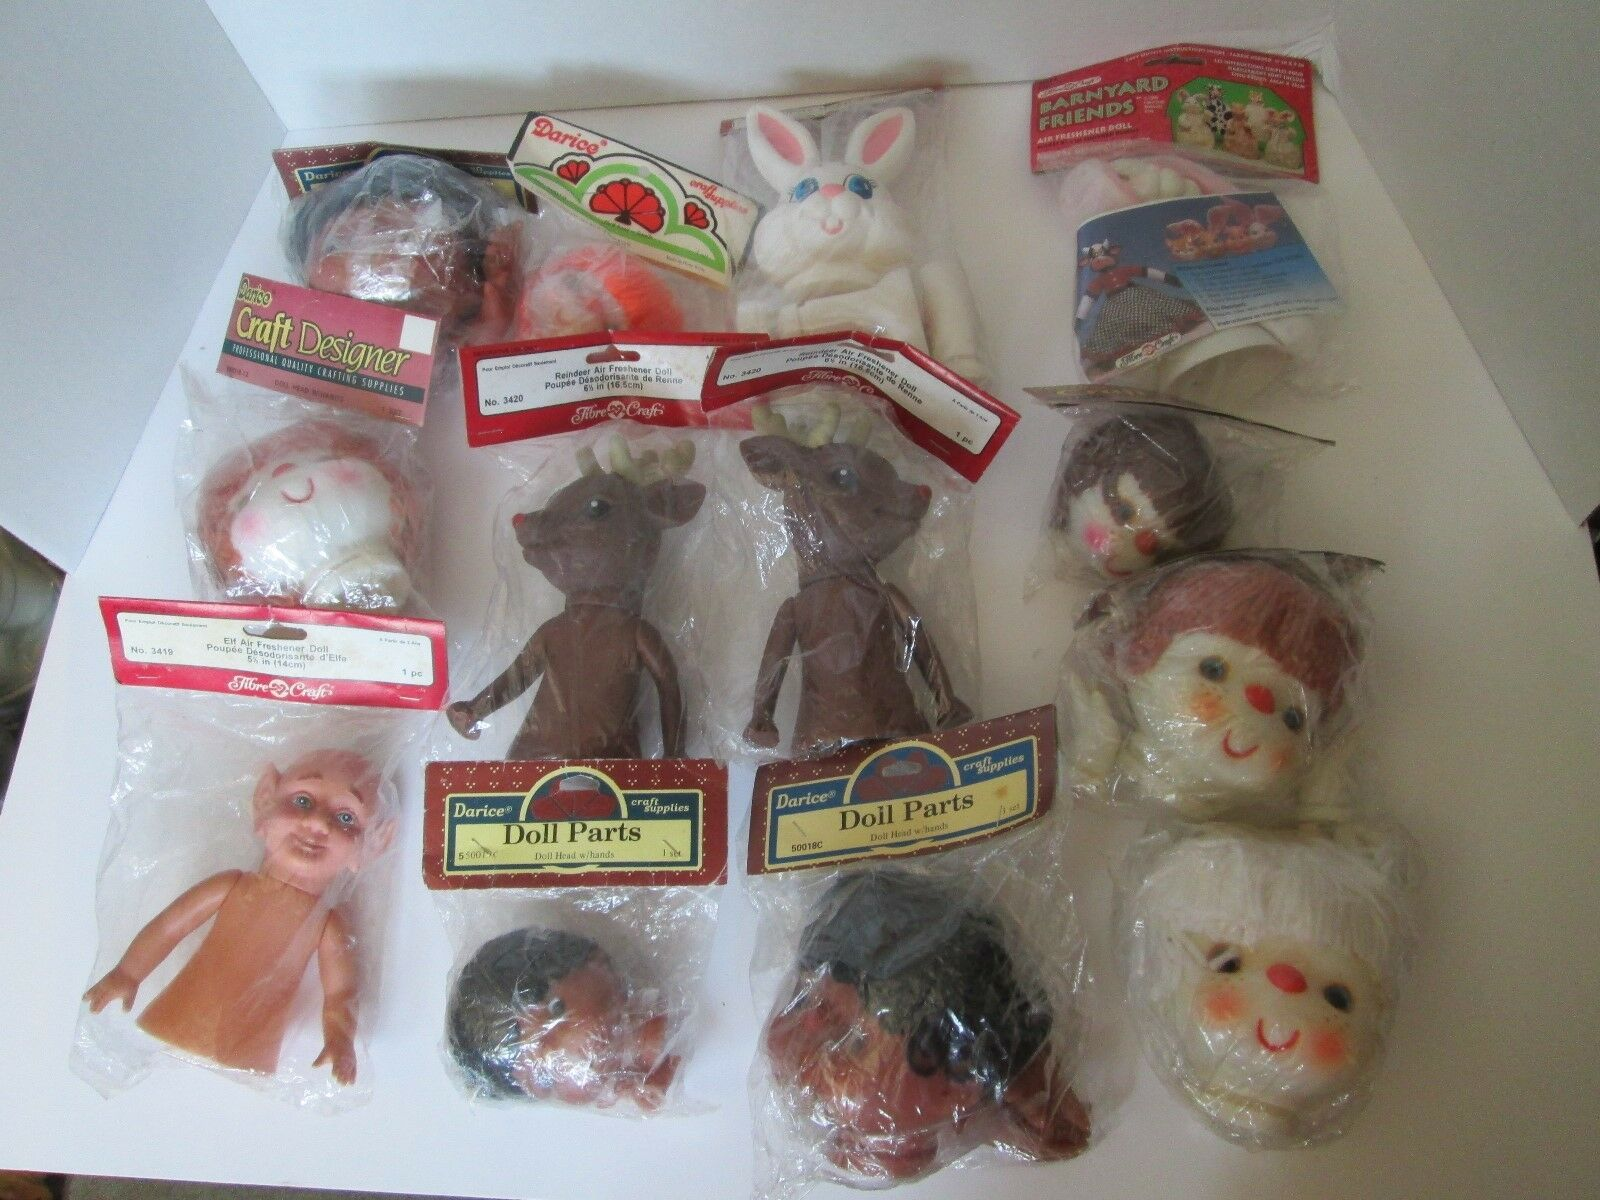 Lot 13 Darice  Fibre Craft bambola PARTS Head Hes Bunny Elf Boy Girl Reindeer Yarn  varie dimensioni